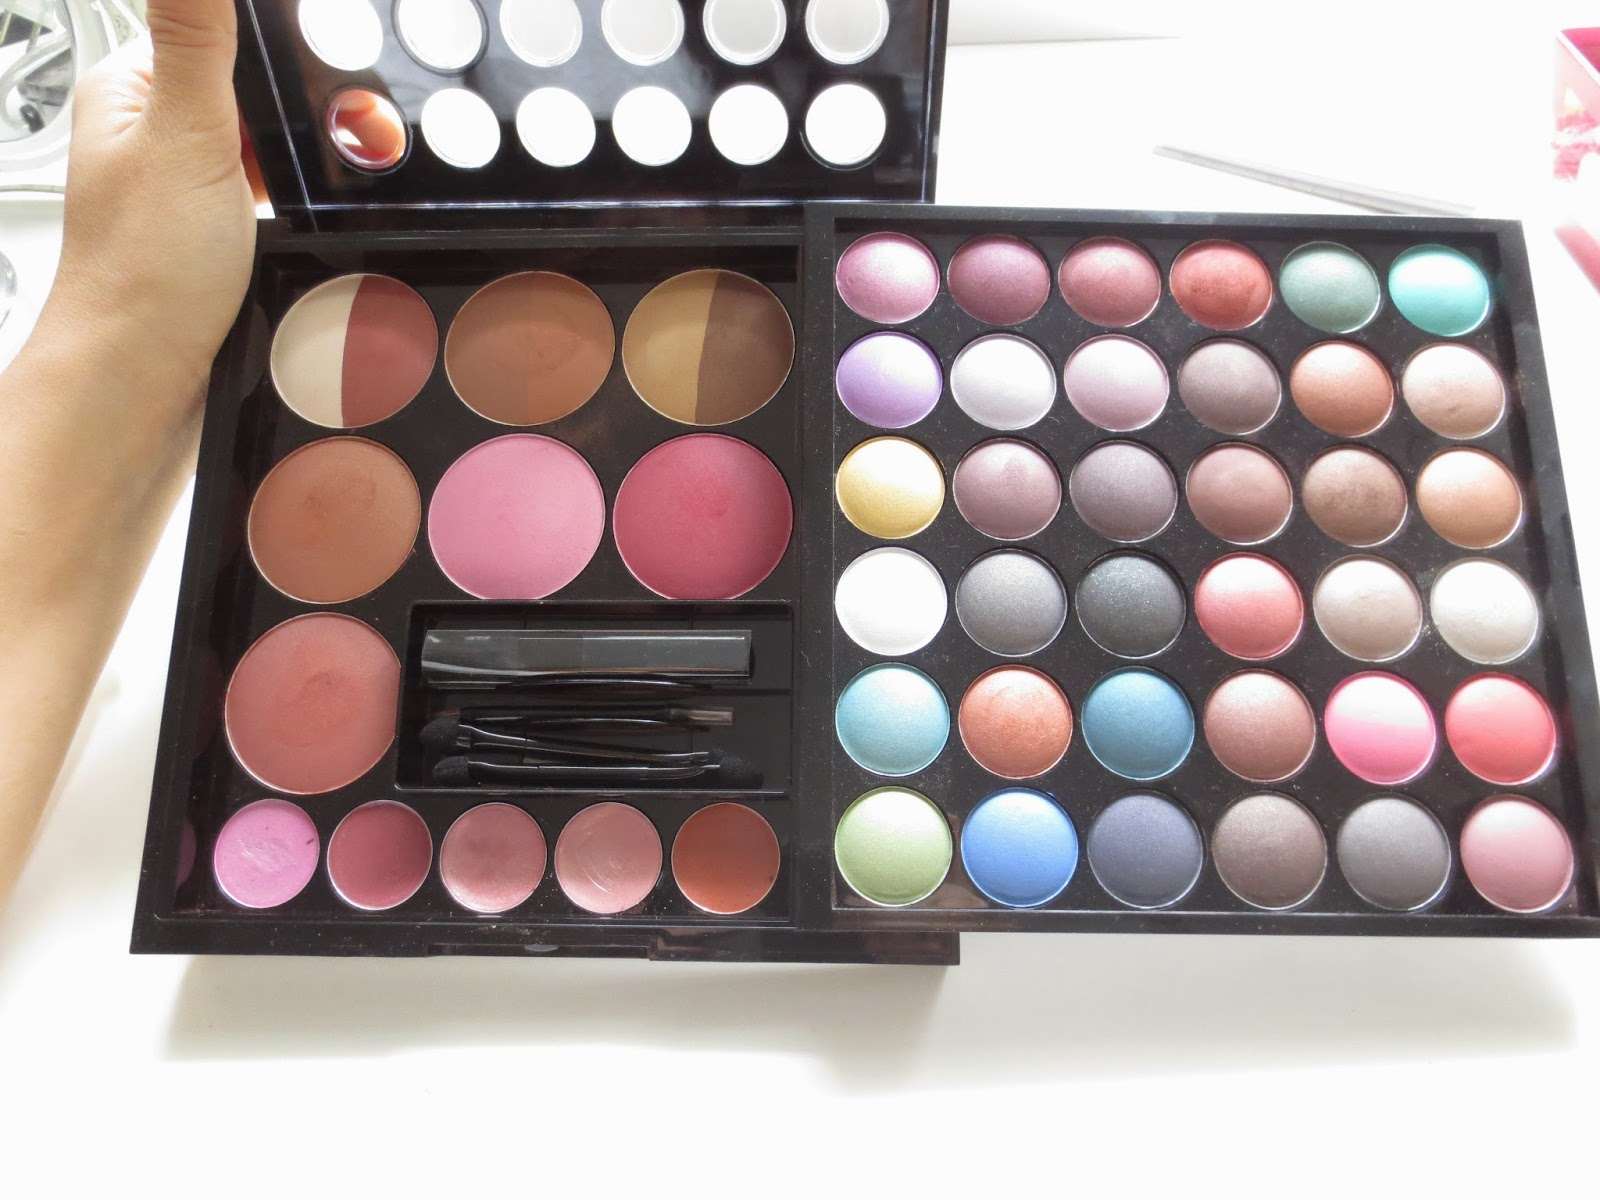 Pics of : Review Nyx Makeup Artist Kit